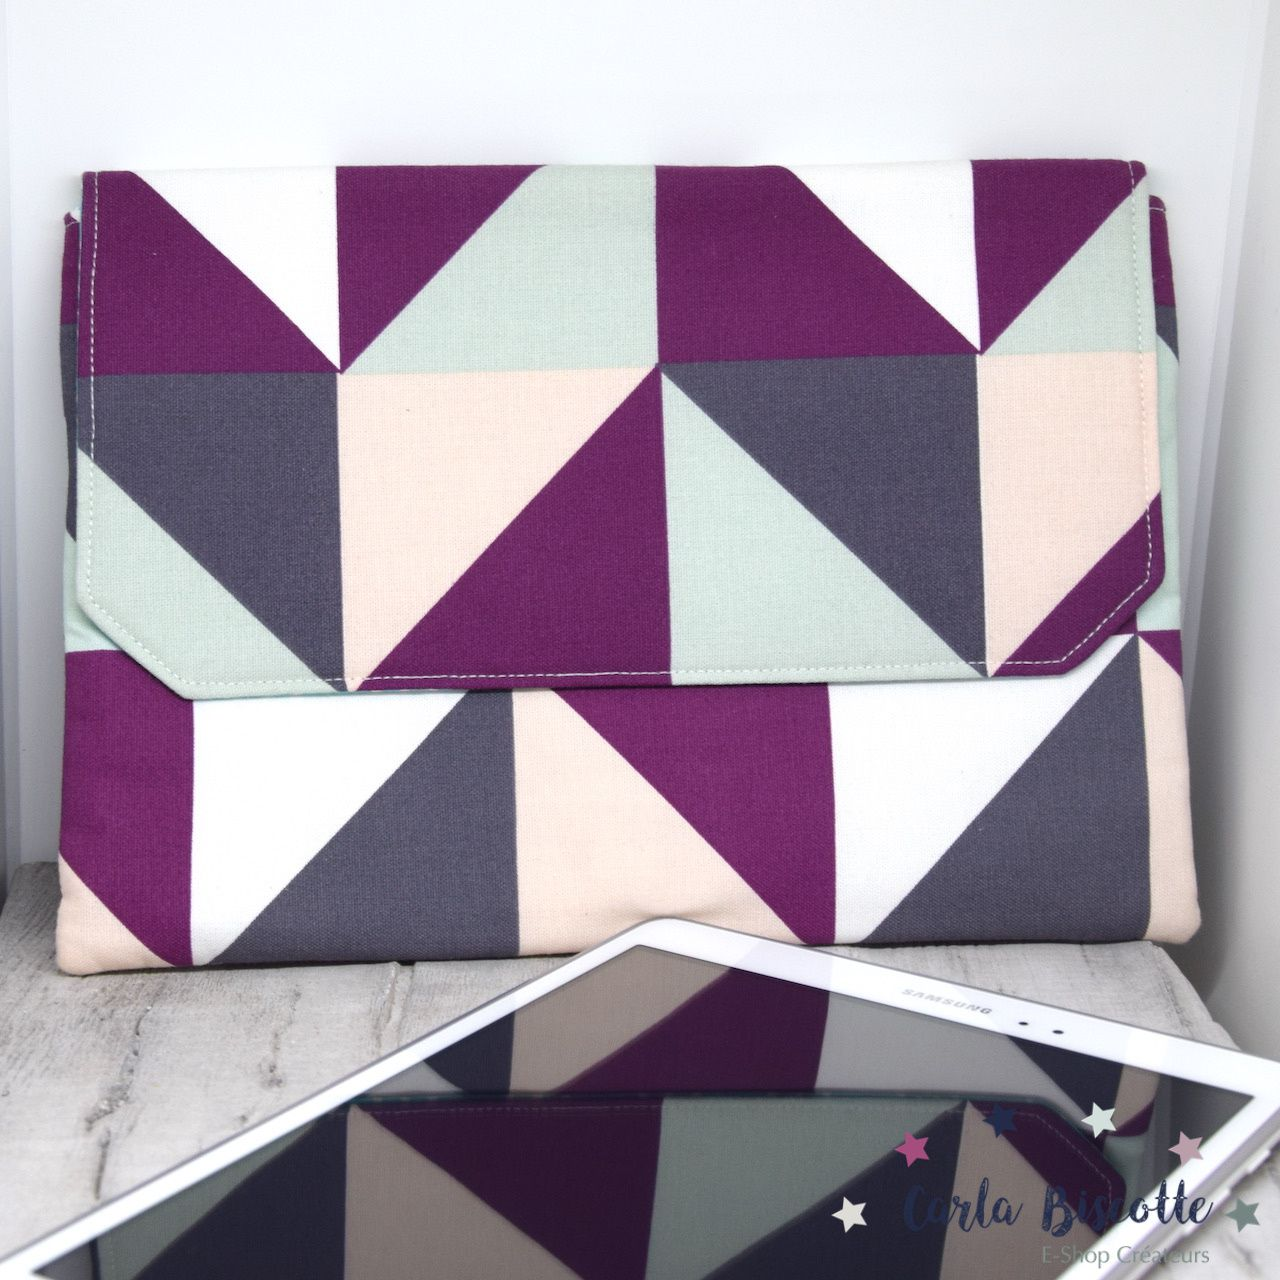 Housse pour tablette tactile Triangles